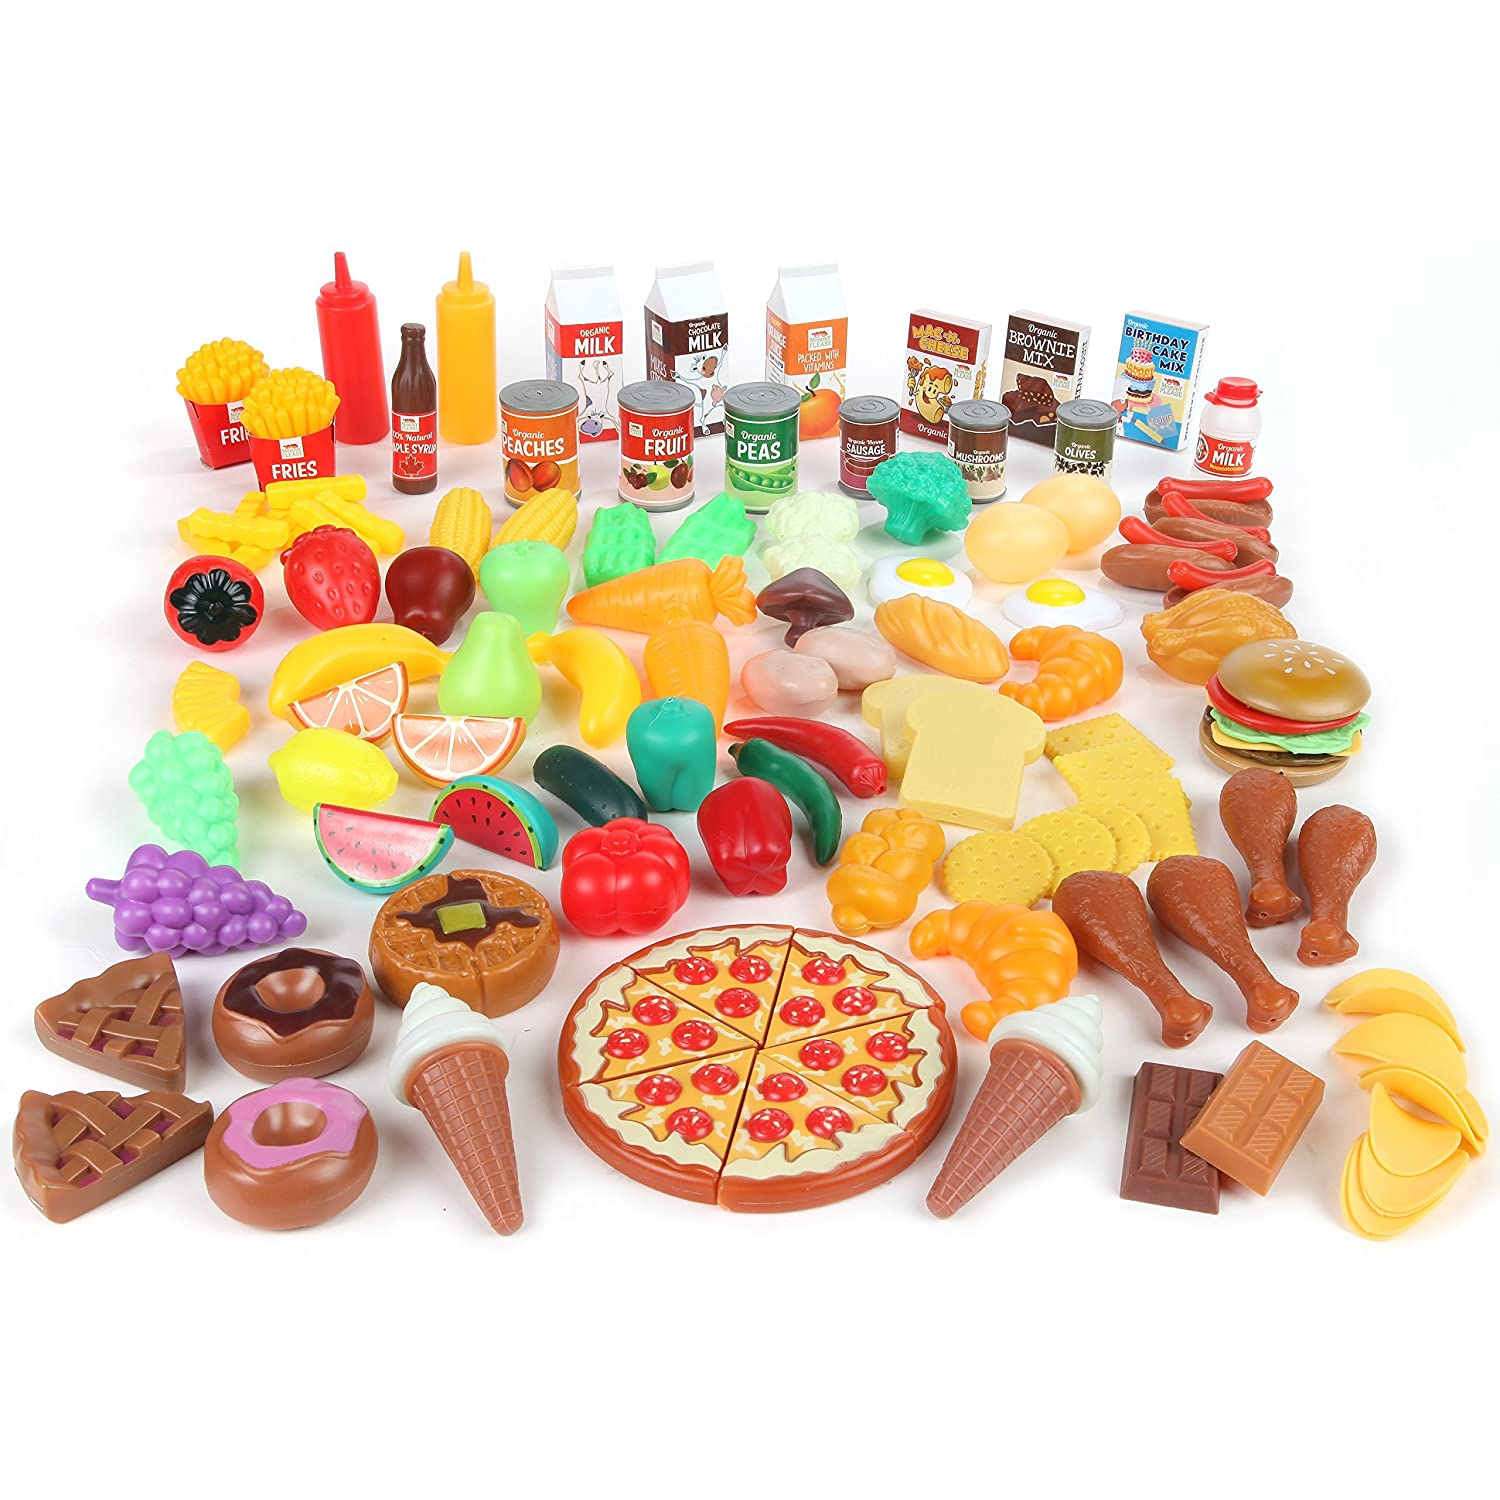 Amazon Play Food Set for Kids & Toy Food for Pretend Play